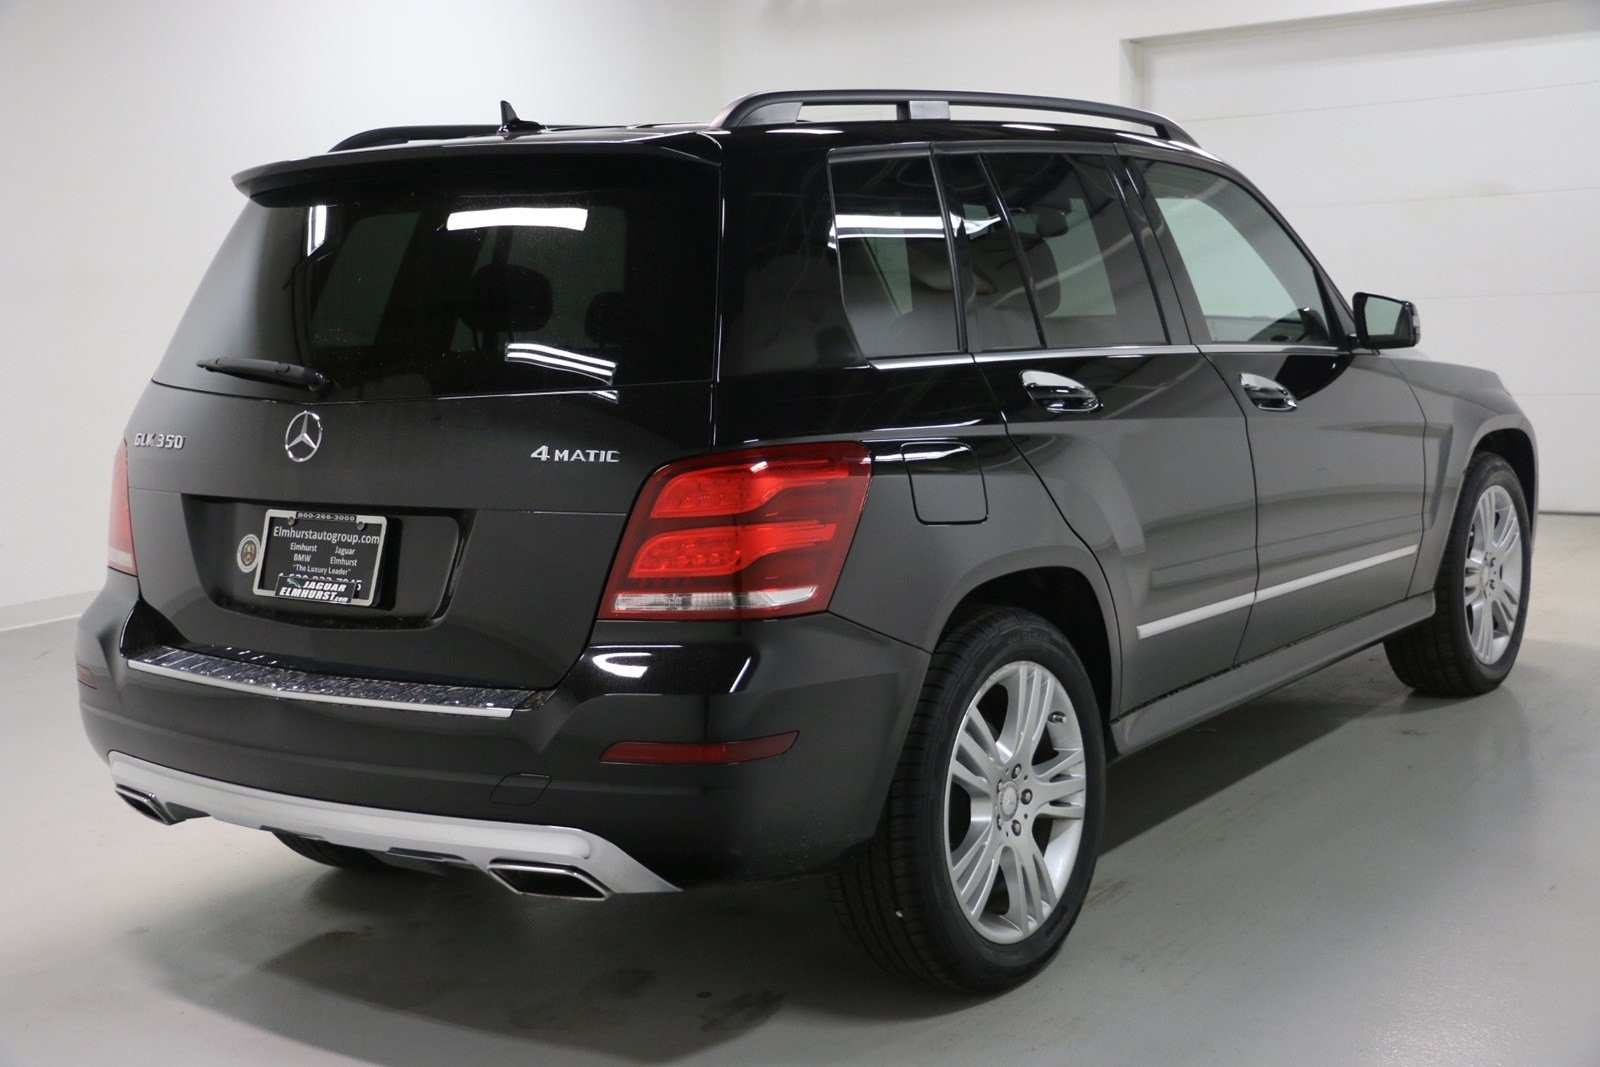 45 The 2019 Mercedes Benz GLK Price Design And Review